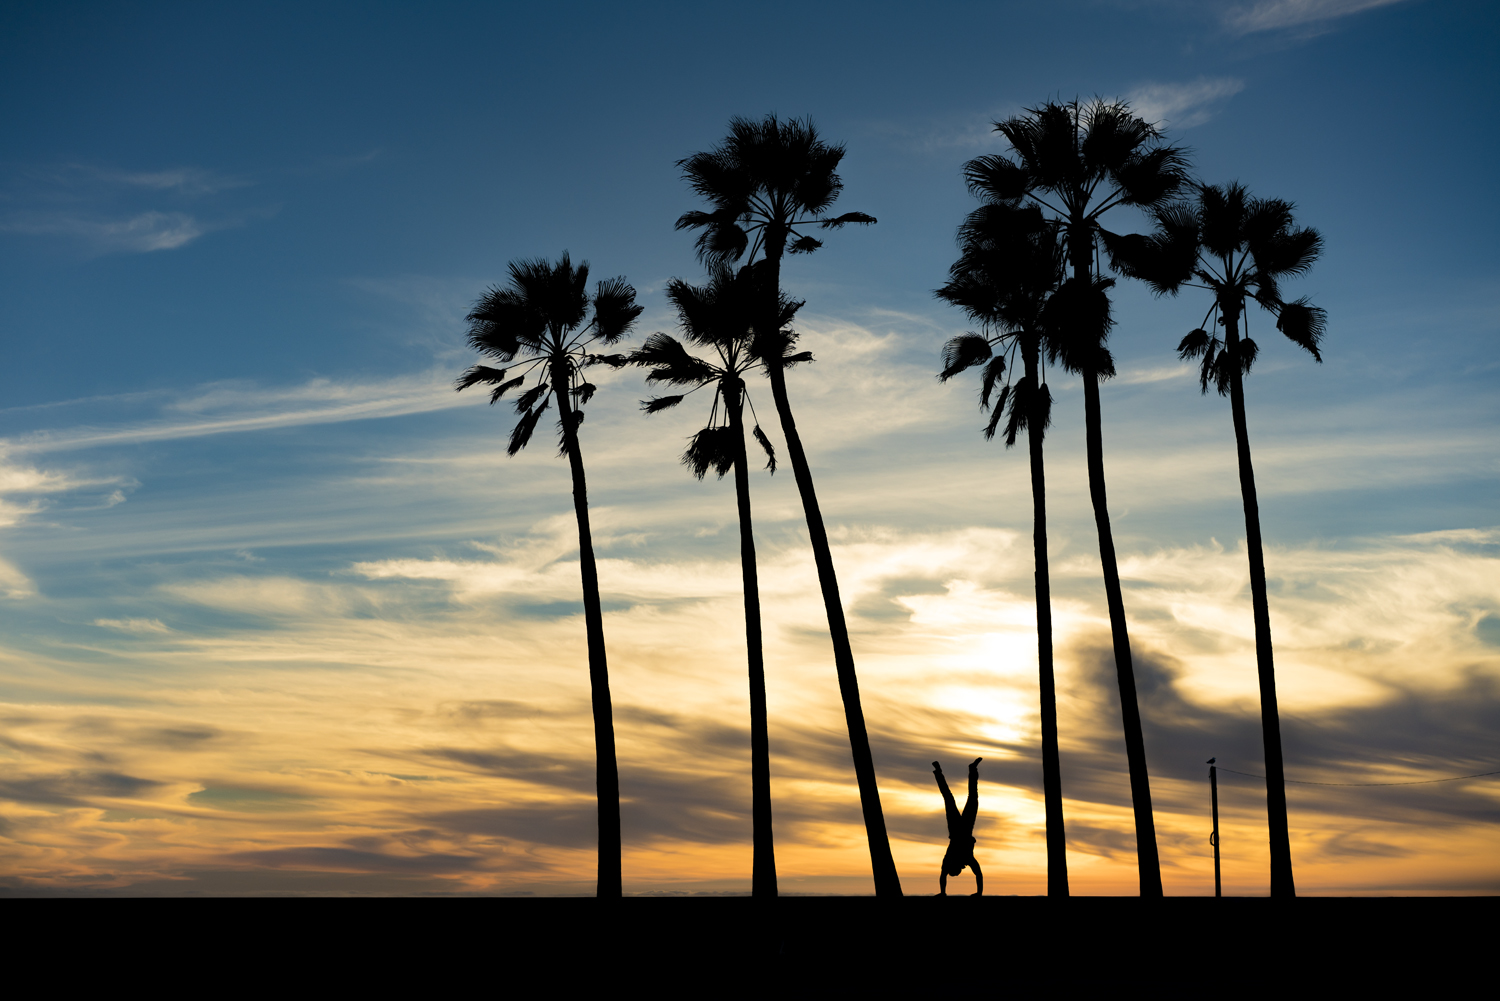 los angeles venice beach sunset palm trees silhouette austin paz adam caroselli